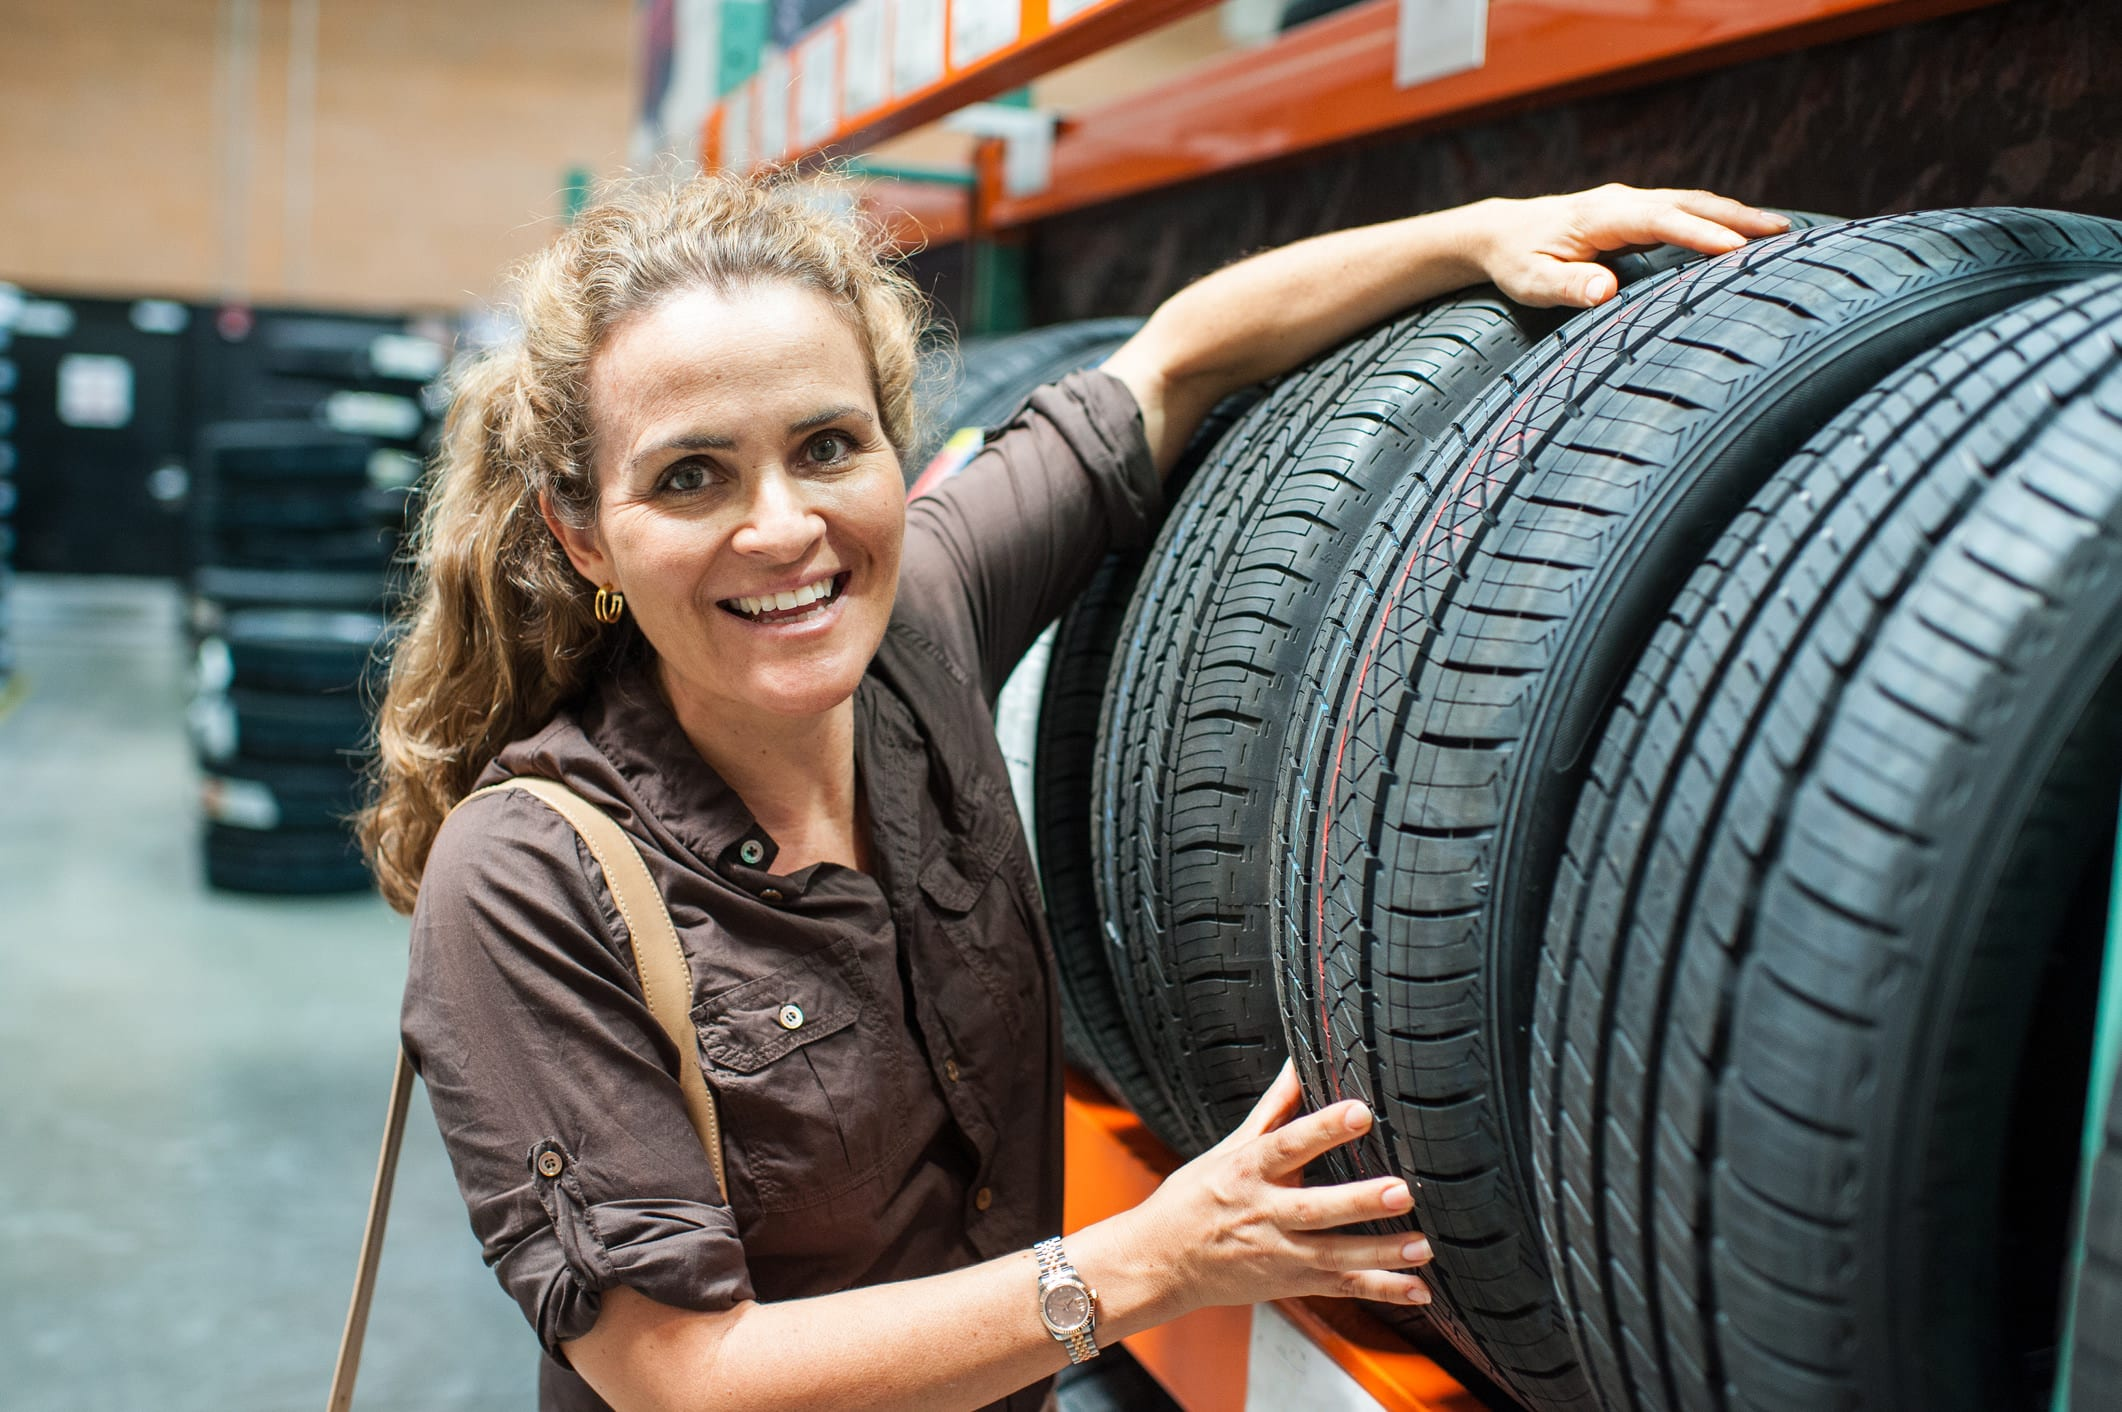 mature smiling caucasian woman shopping for a tire